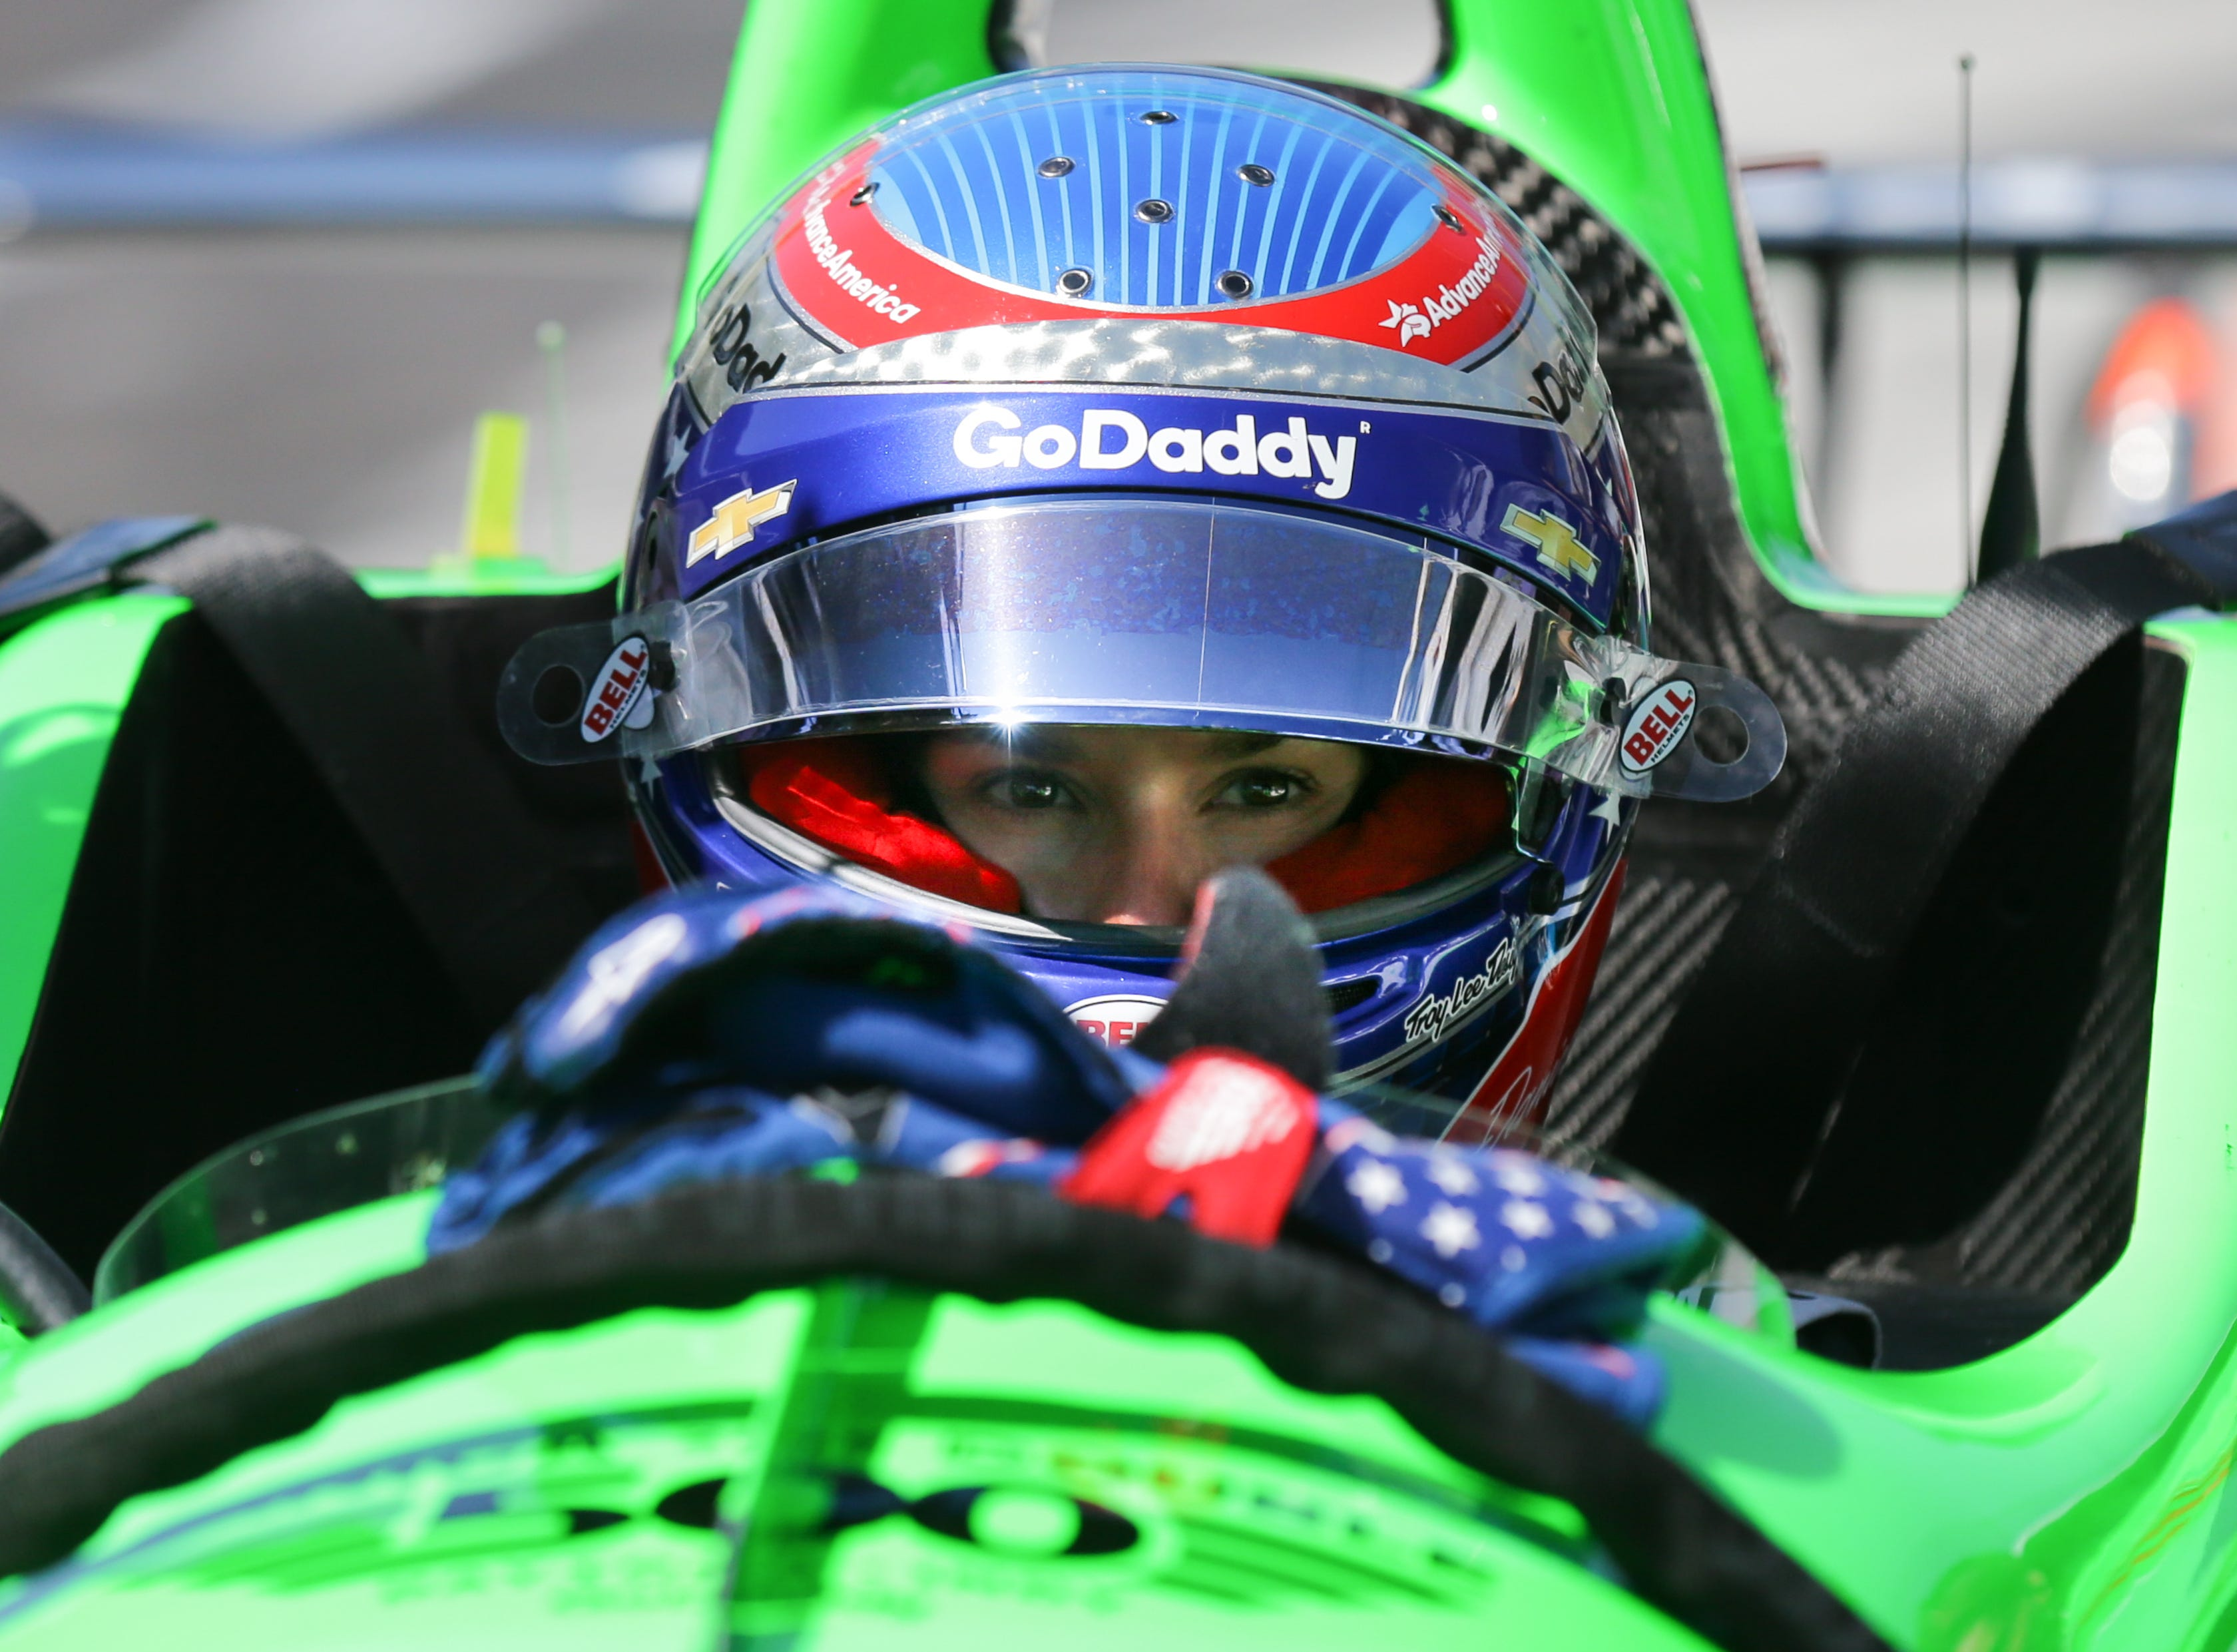 IndyCar driver Danica Patrick puts waits in her car during veteran refresher testing for the Indy 500 at the Indianapolis Motor Speedway on Tuesday, May 1, 2018.